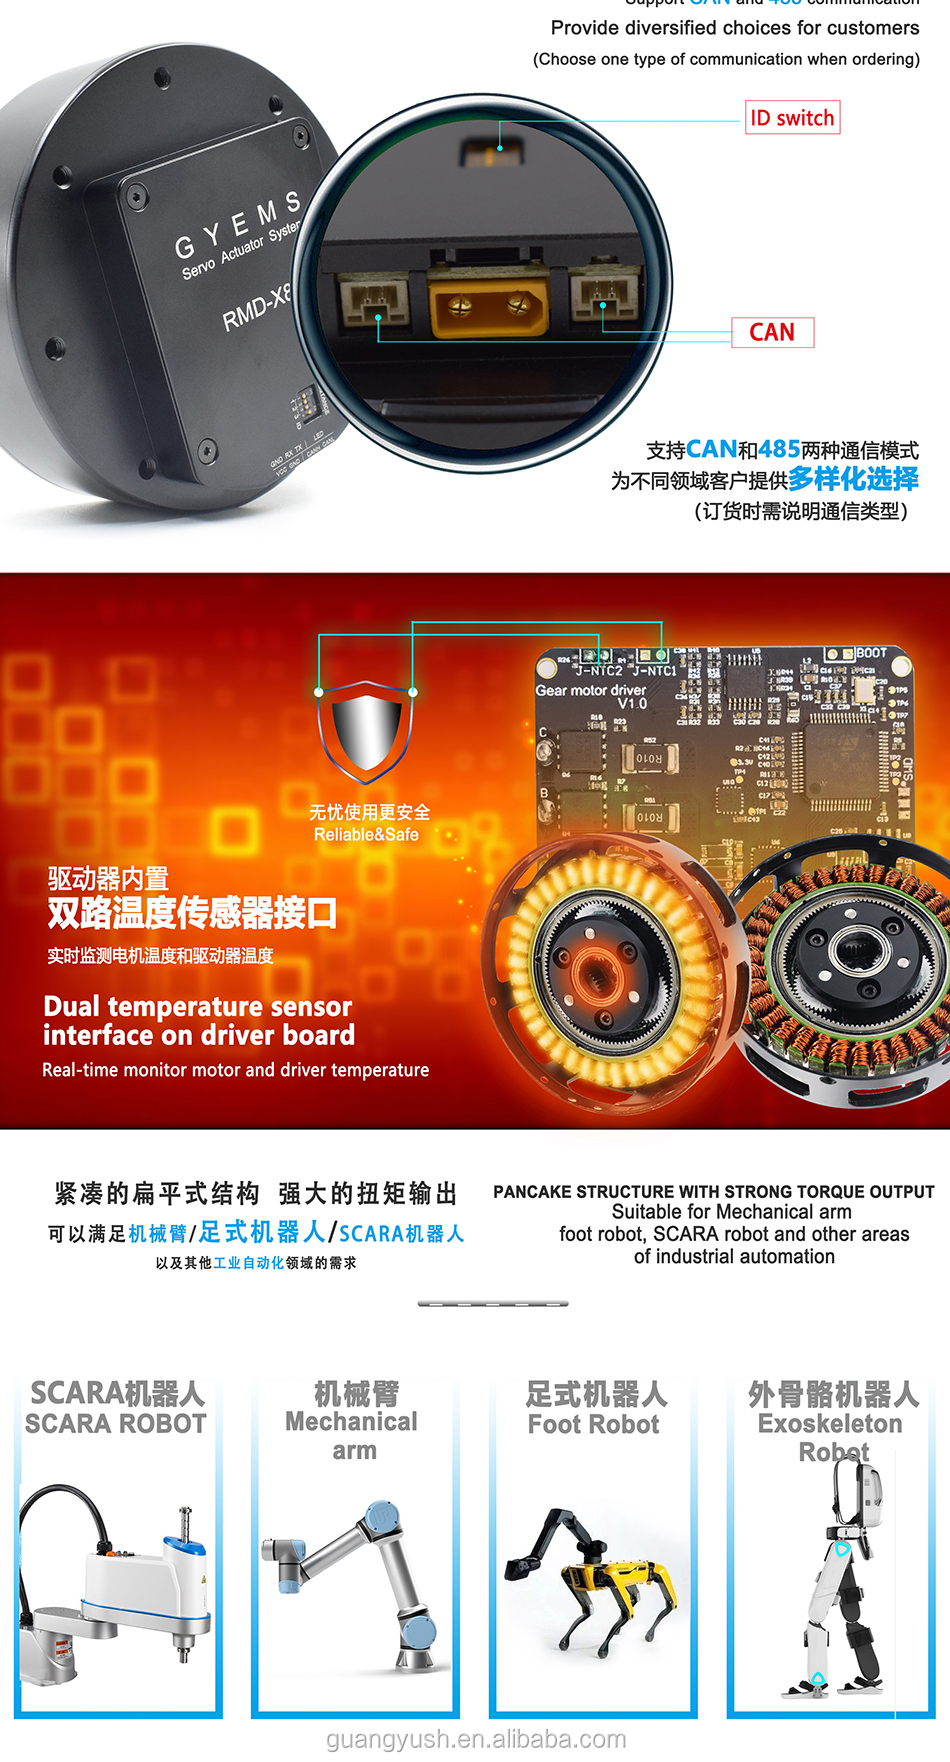 RMD-X8 Pro  brushless DC gear motor pancake servo motor with encoder and  motor drive 24v48v 500W 12N.M